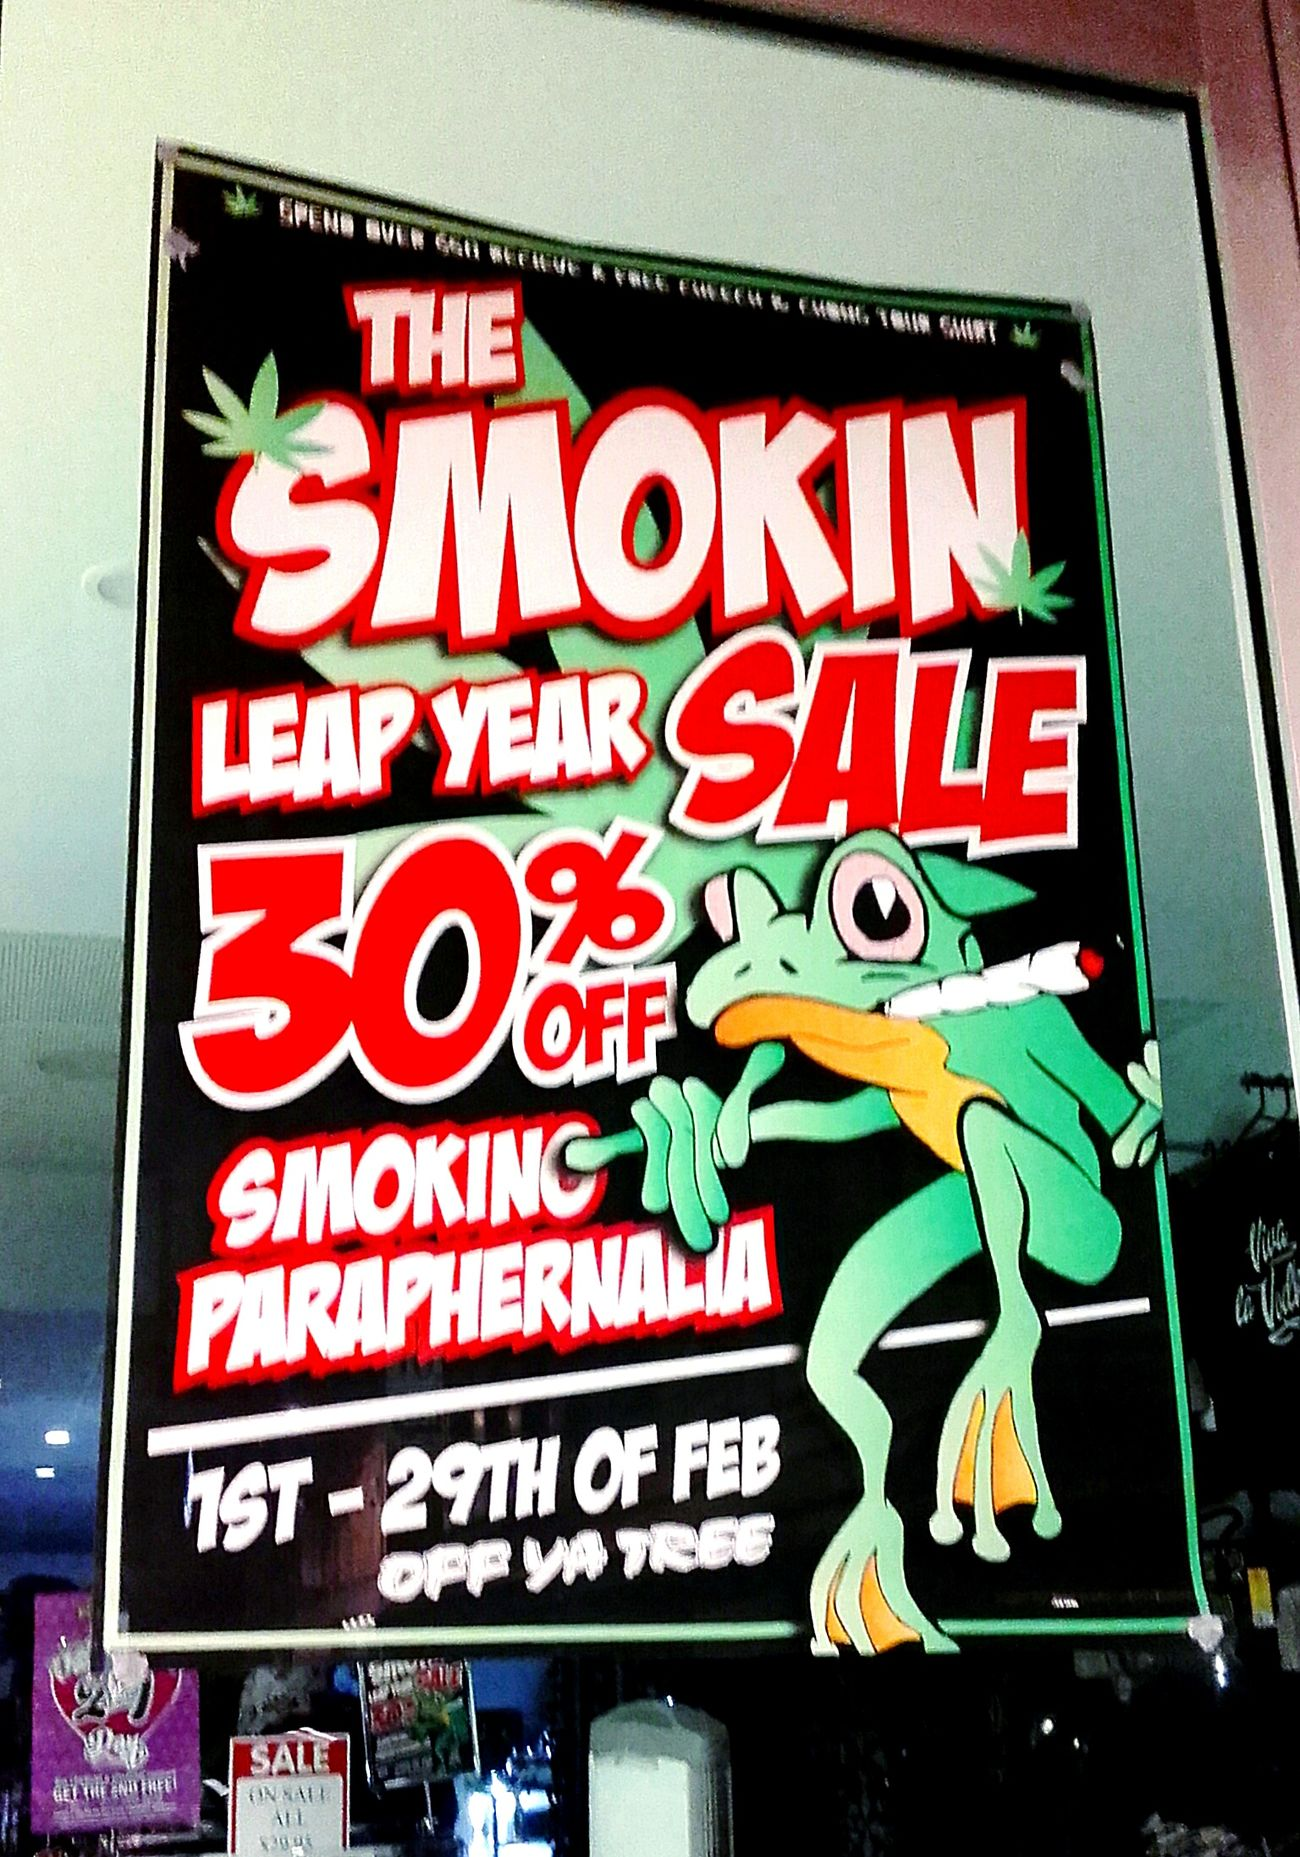 Smokin Sign Blowing Blunts Blunt Blowing Signs Spliffs Joint Smoking  Smokin Ganja Smoking Posters 30% Sale Spliff Poster Check This Out Puffpuffpass Chilling ✌ Blunt Blowin Puffingblunts Blunts Joint Puff Puff Pass The Smokin Sale Cool Frog